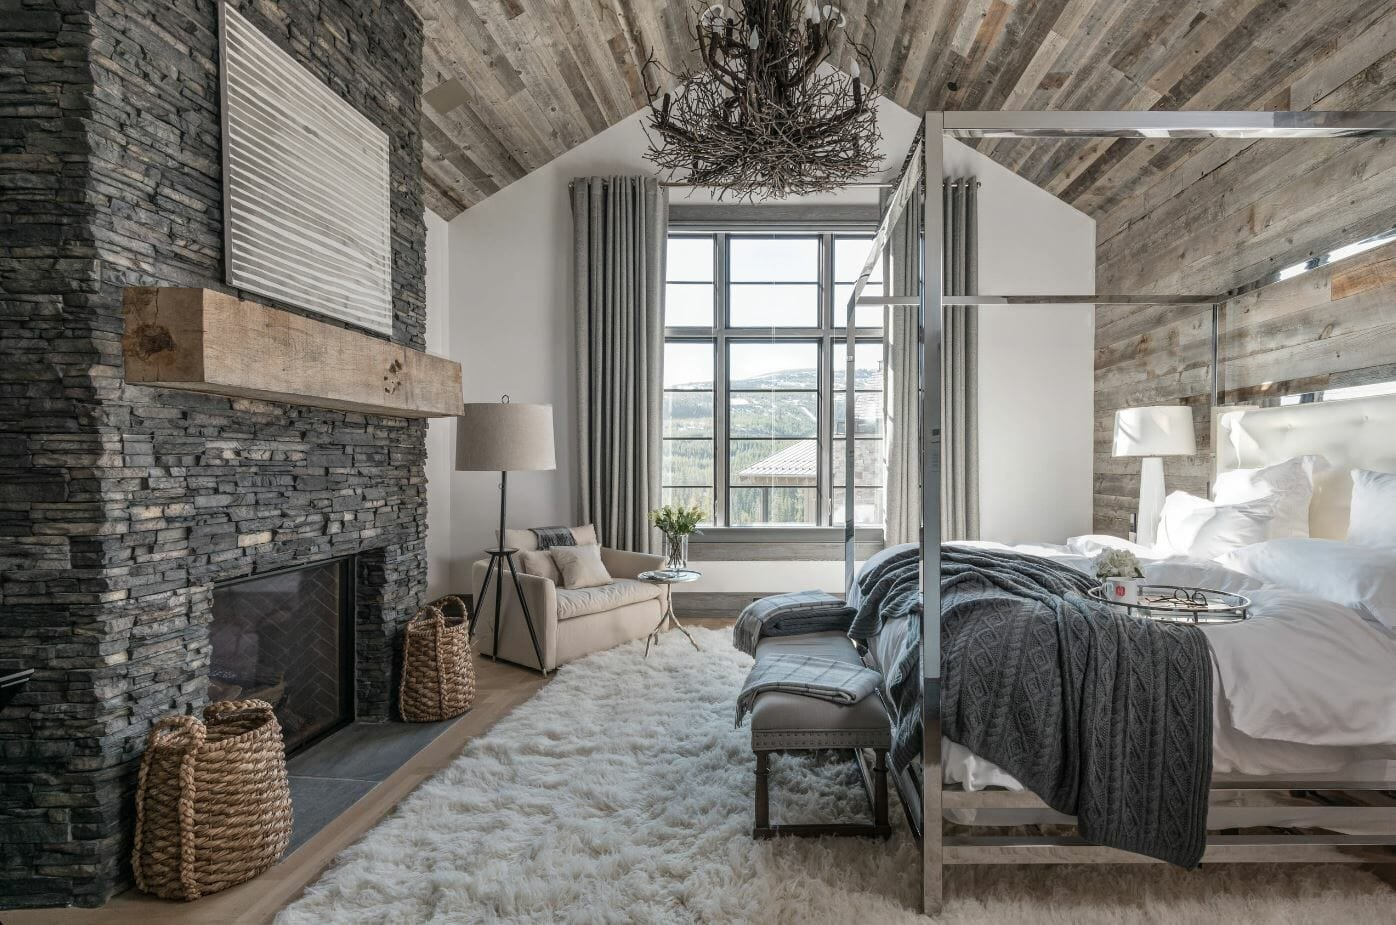 Modern Rustic Interior Design 7 Best Tips To Create Your